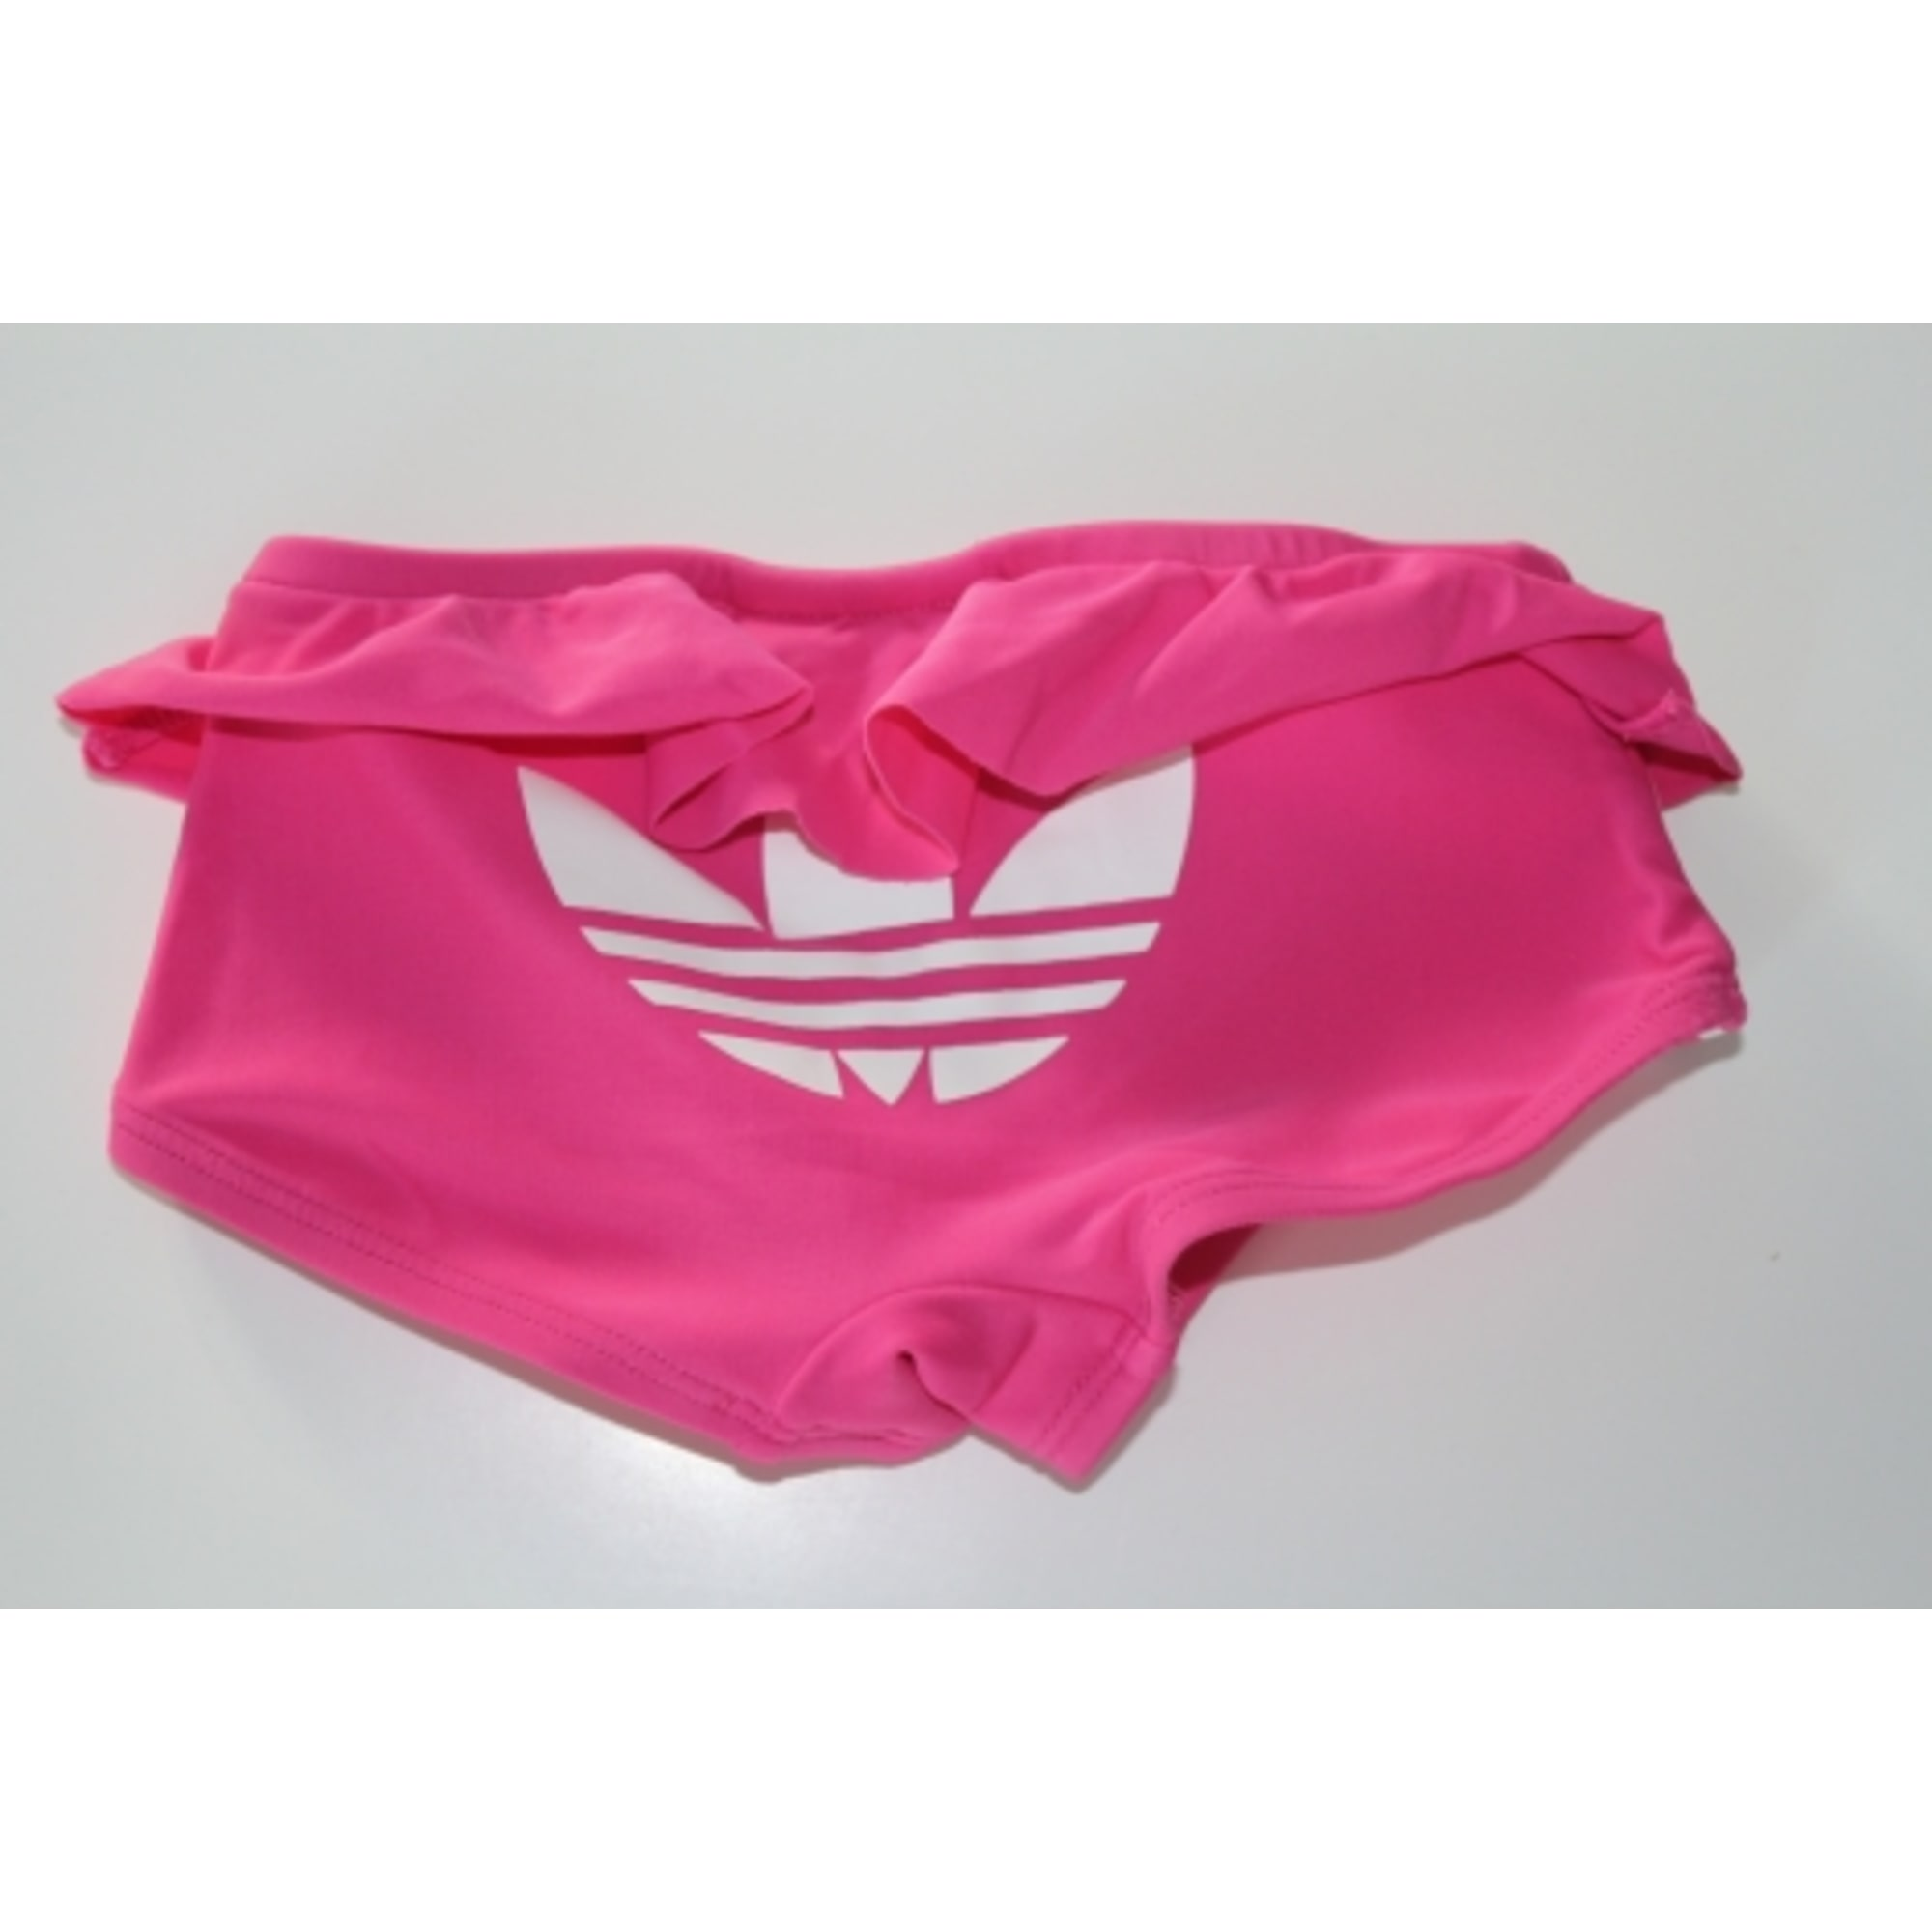 Shorts ADIDAS Pink, fuchsia, light pink